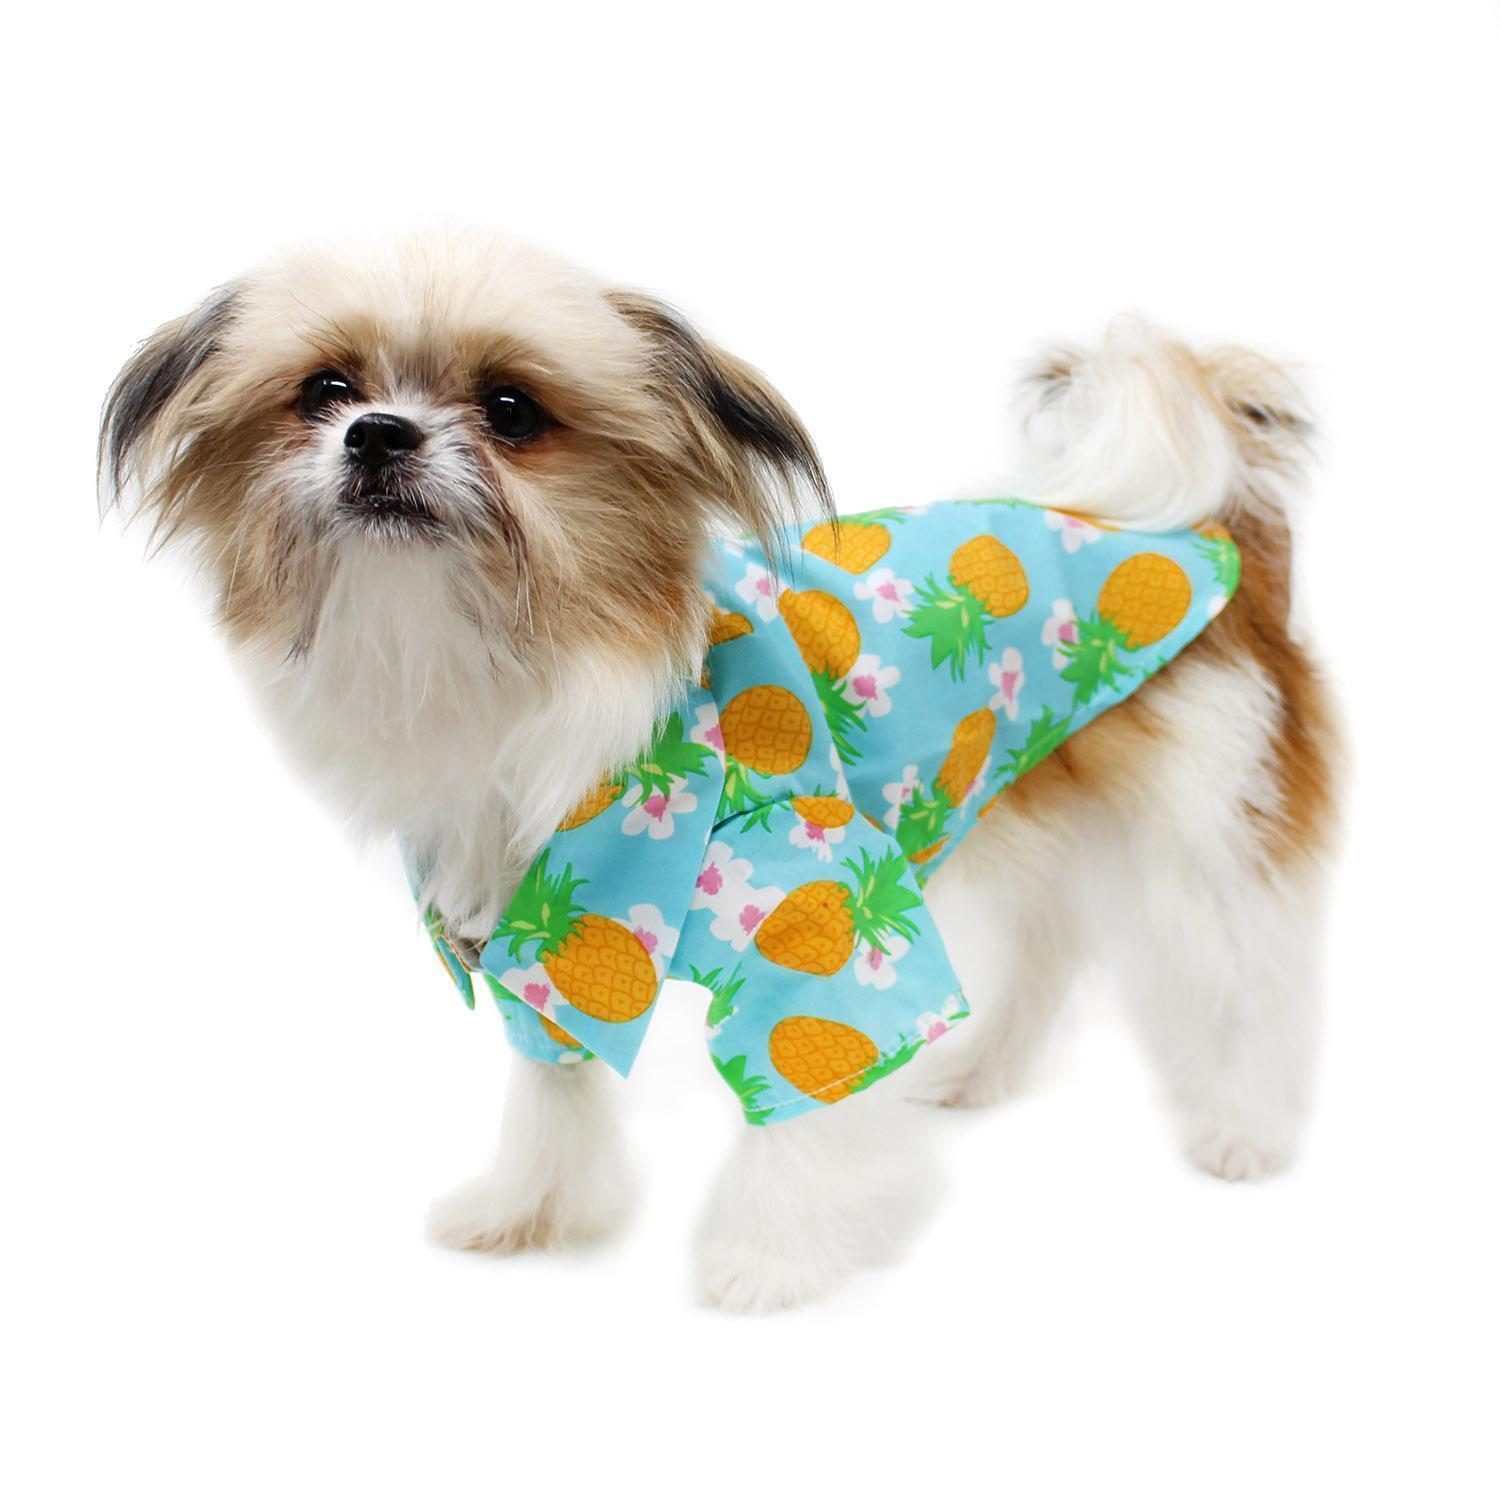 dog in pineapple shirt